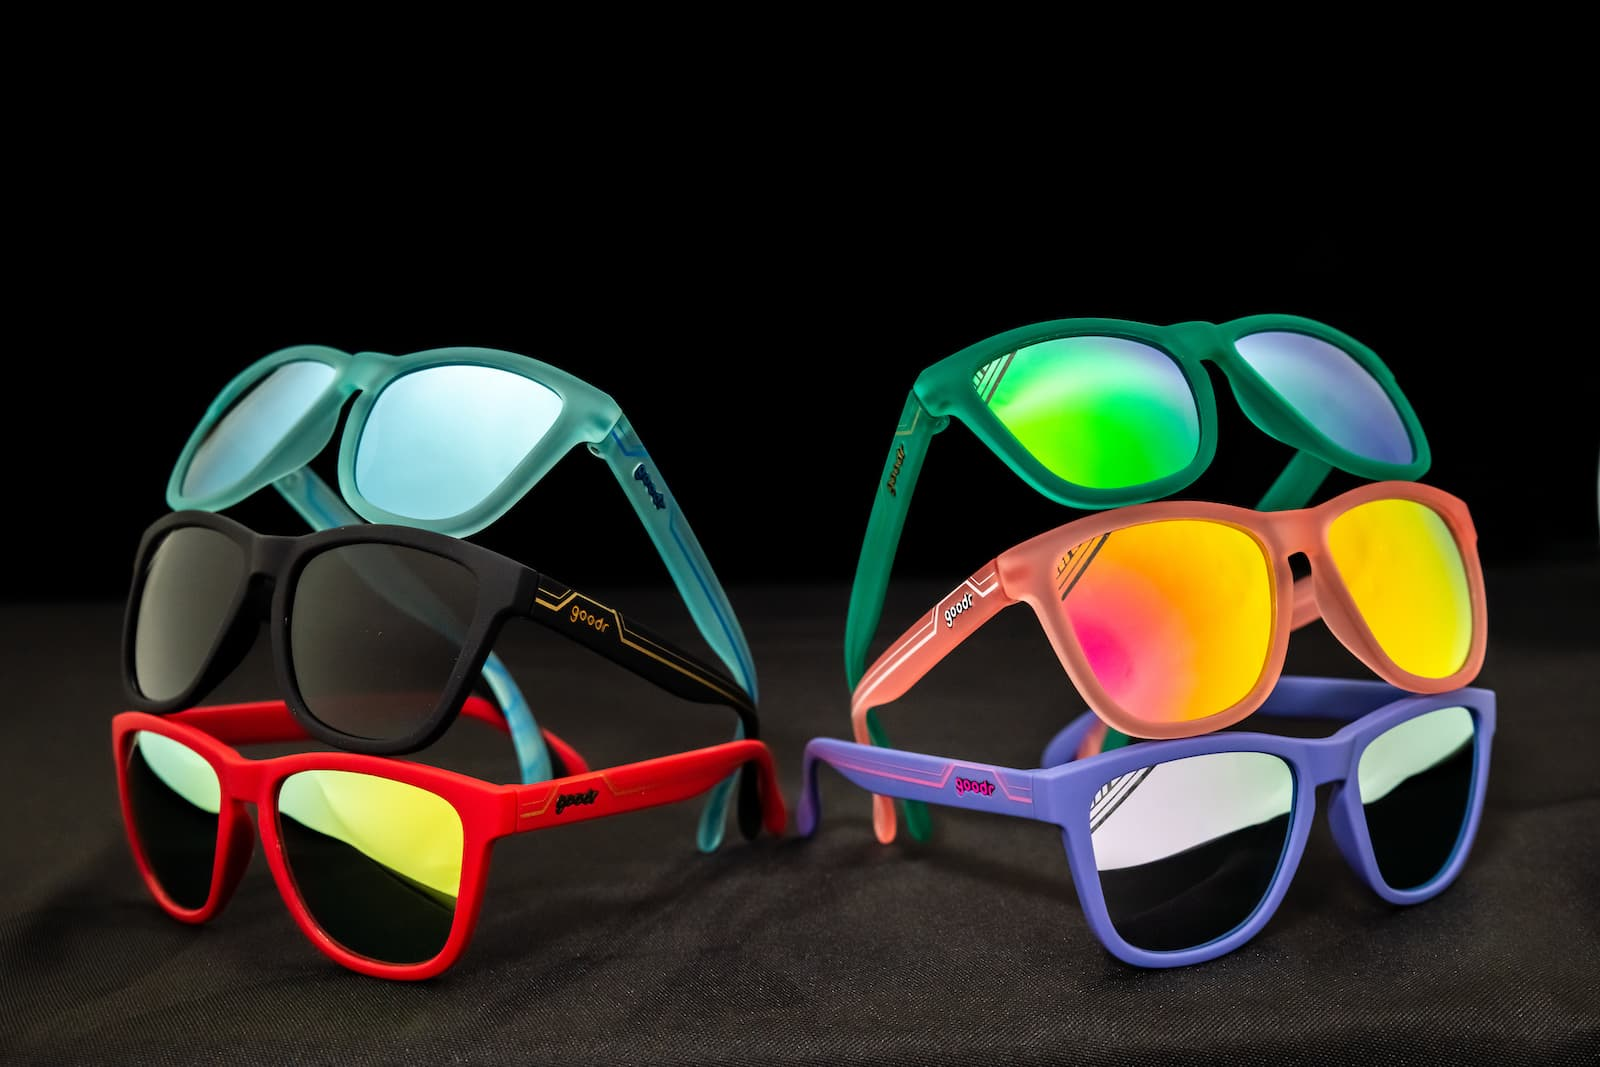 Six goodr sunglasses with Art Deco detailing - colored frames in light blue, green, black, red, peach, and purple